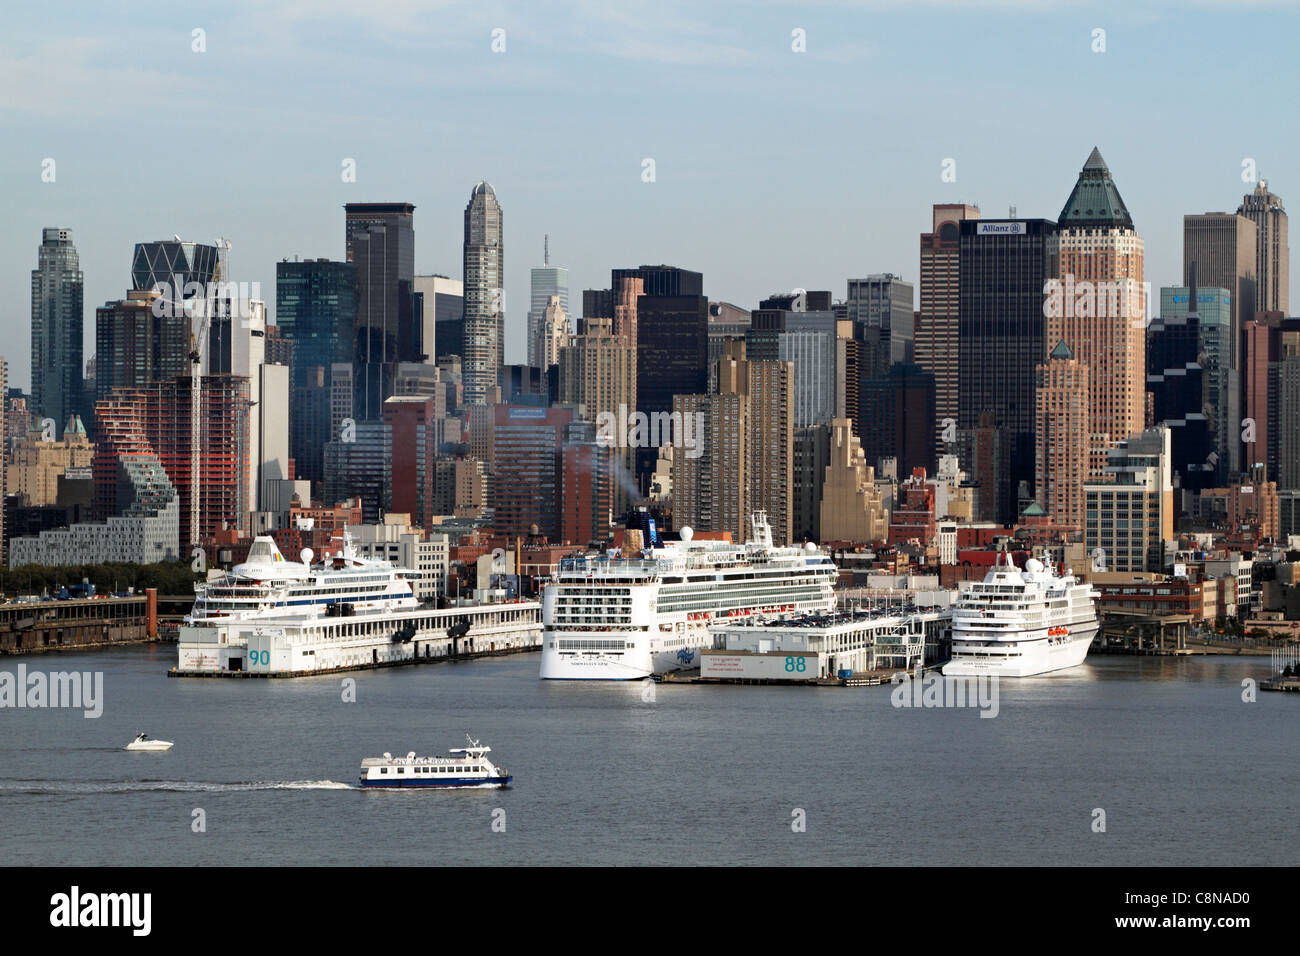 Cruise Ships docked on the Hudson River near mid-town Manhattan, New York City, New York, USA - Stock Image